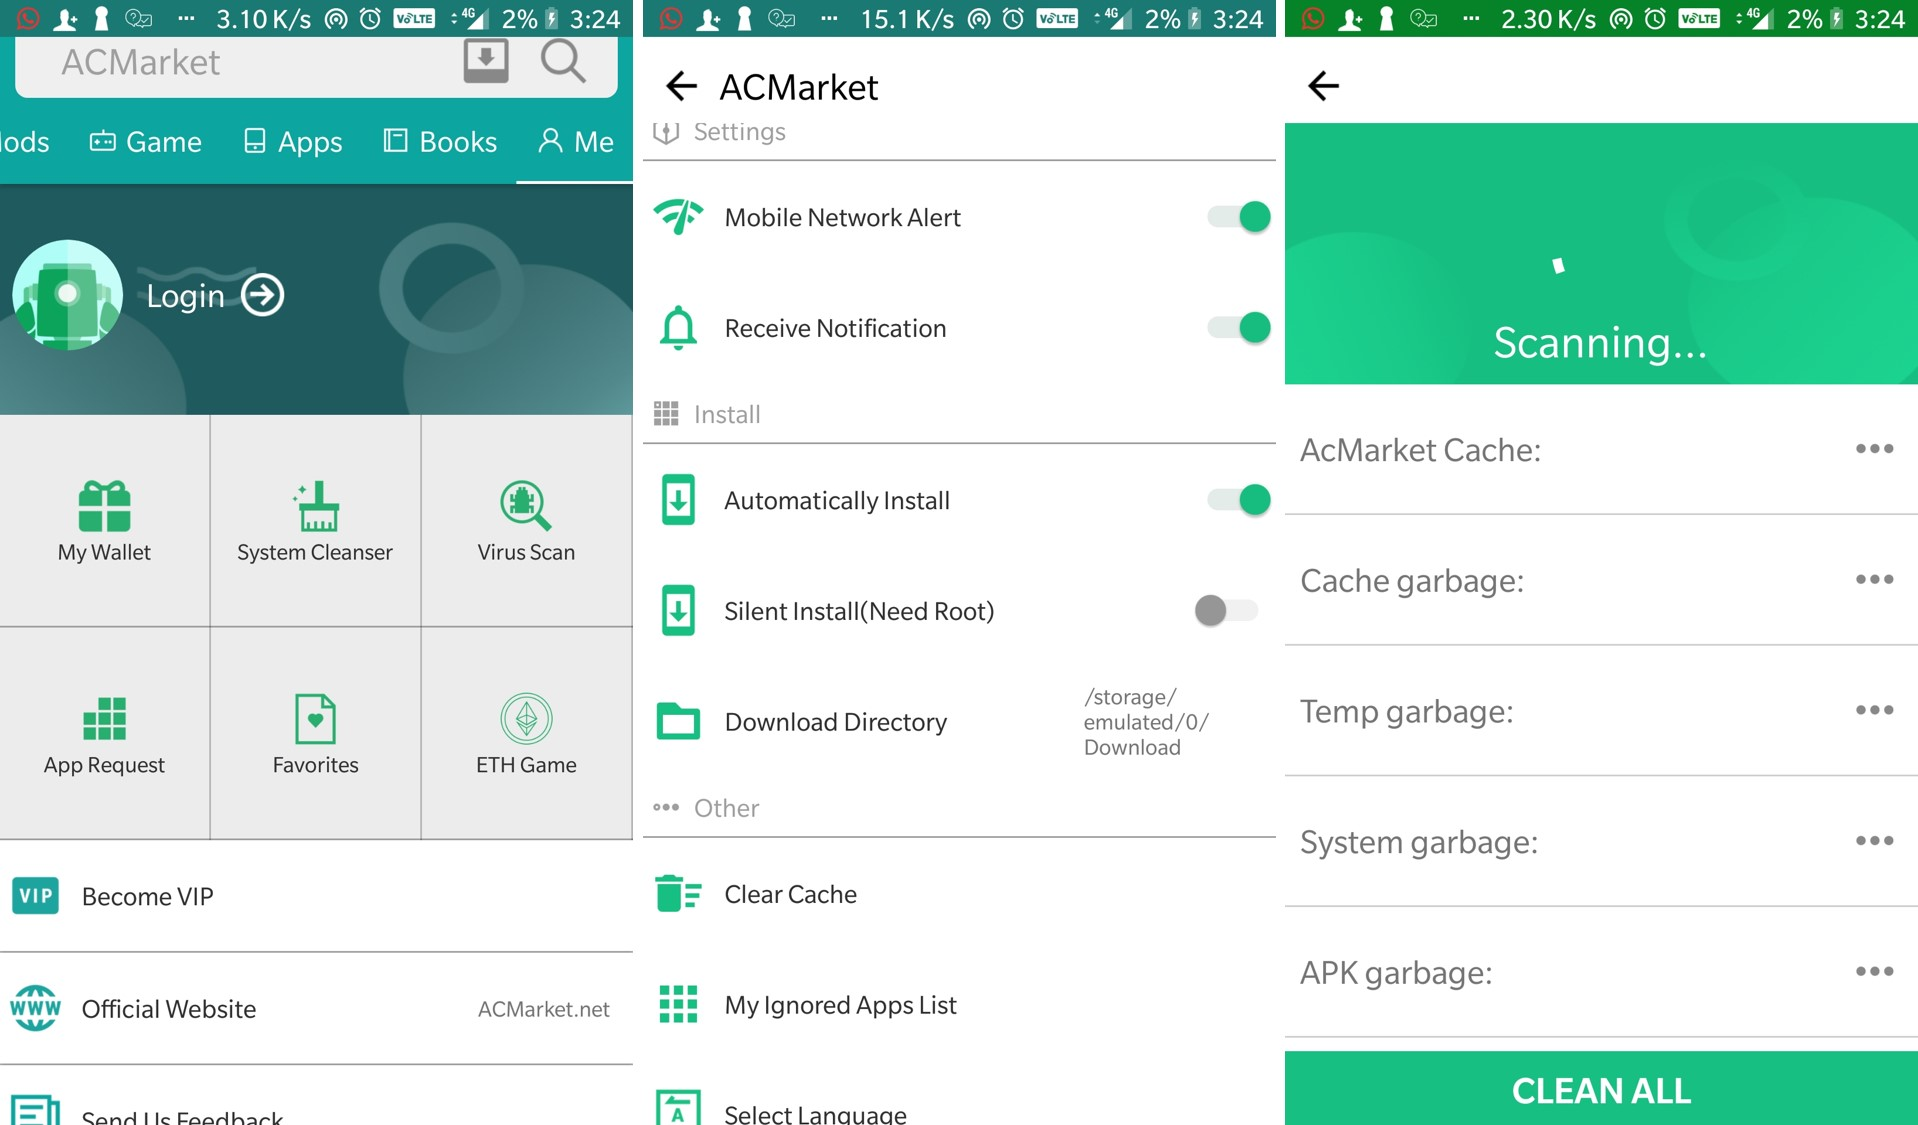 ACmarket Android Apk: How to download and Install